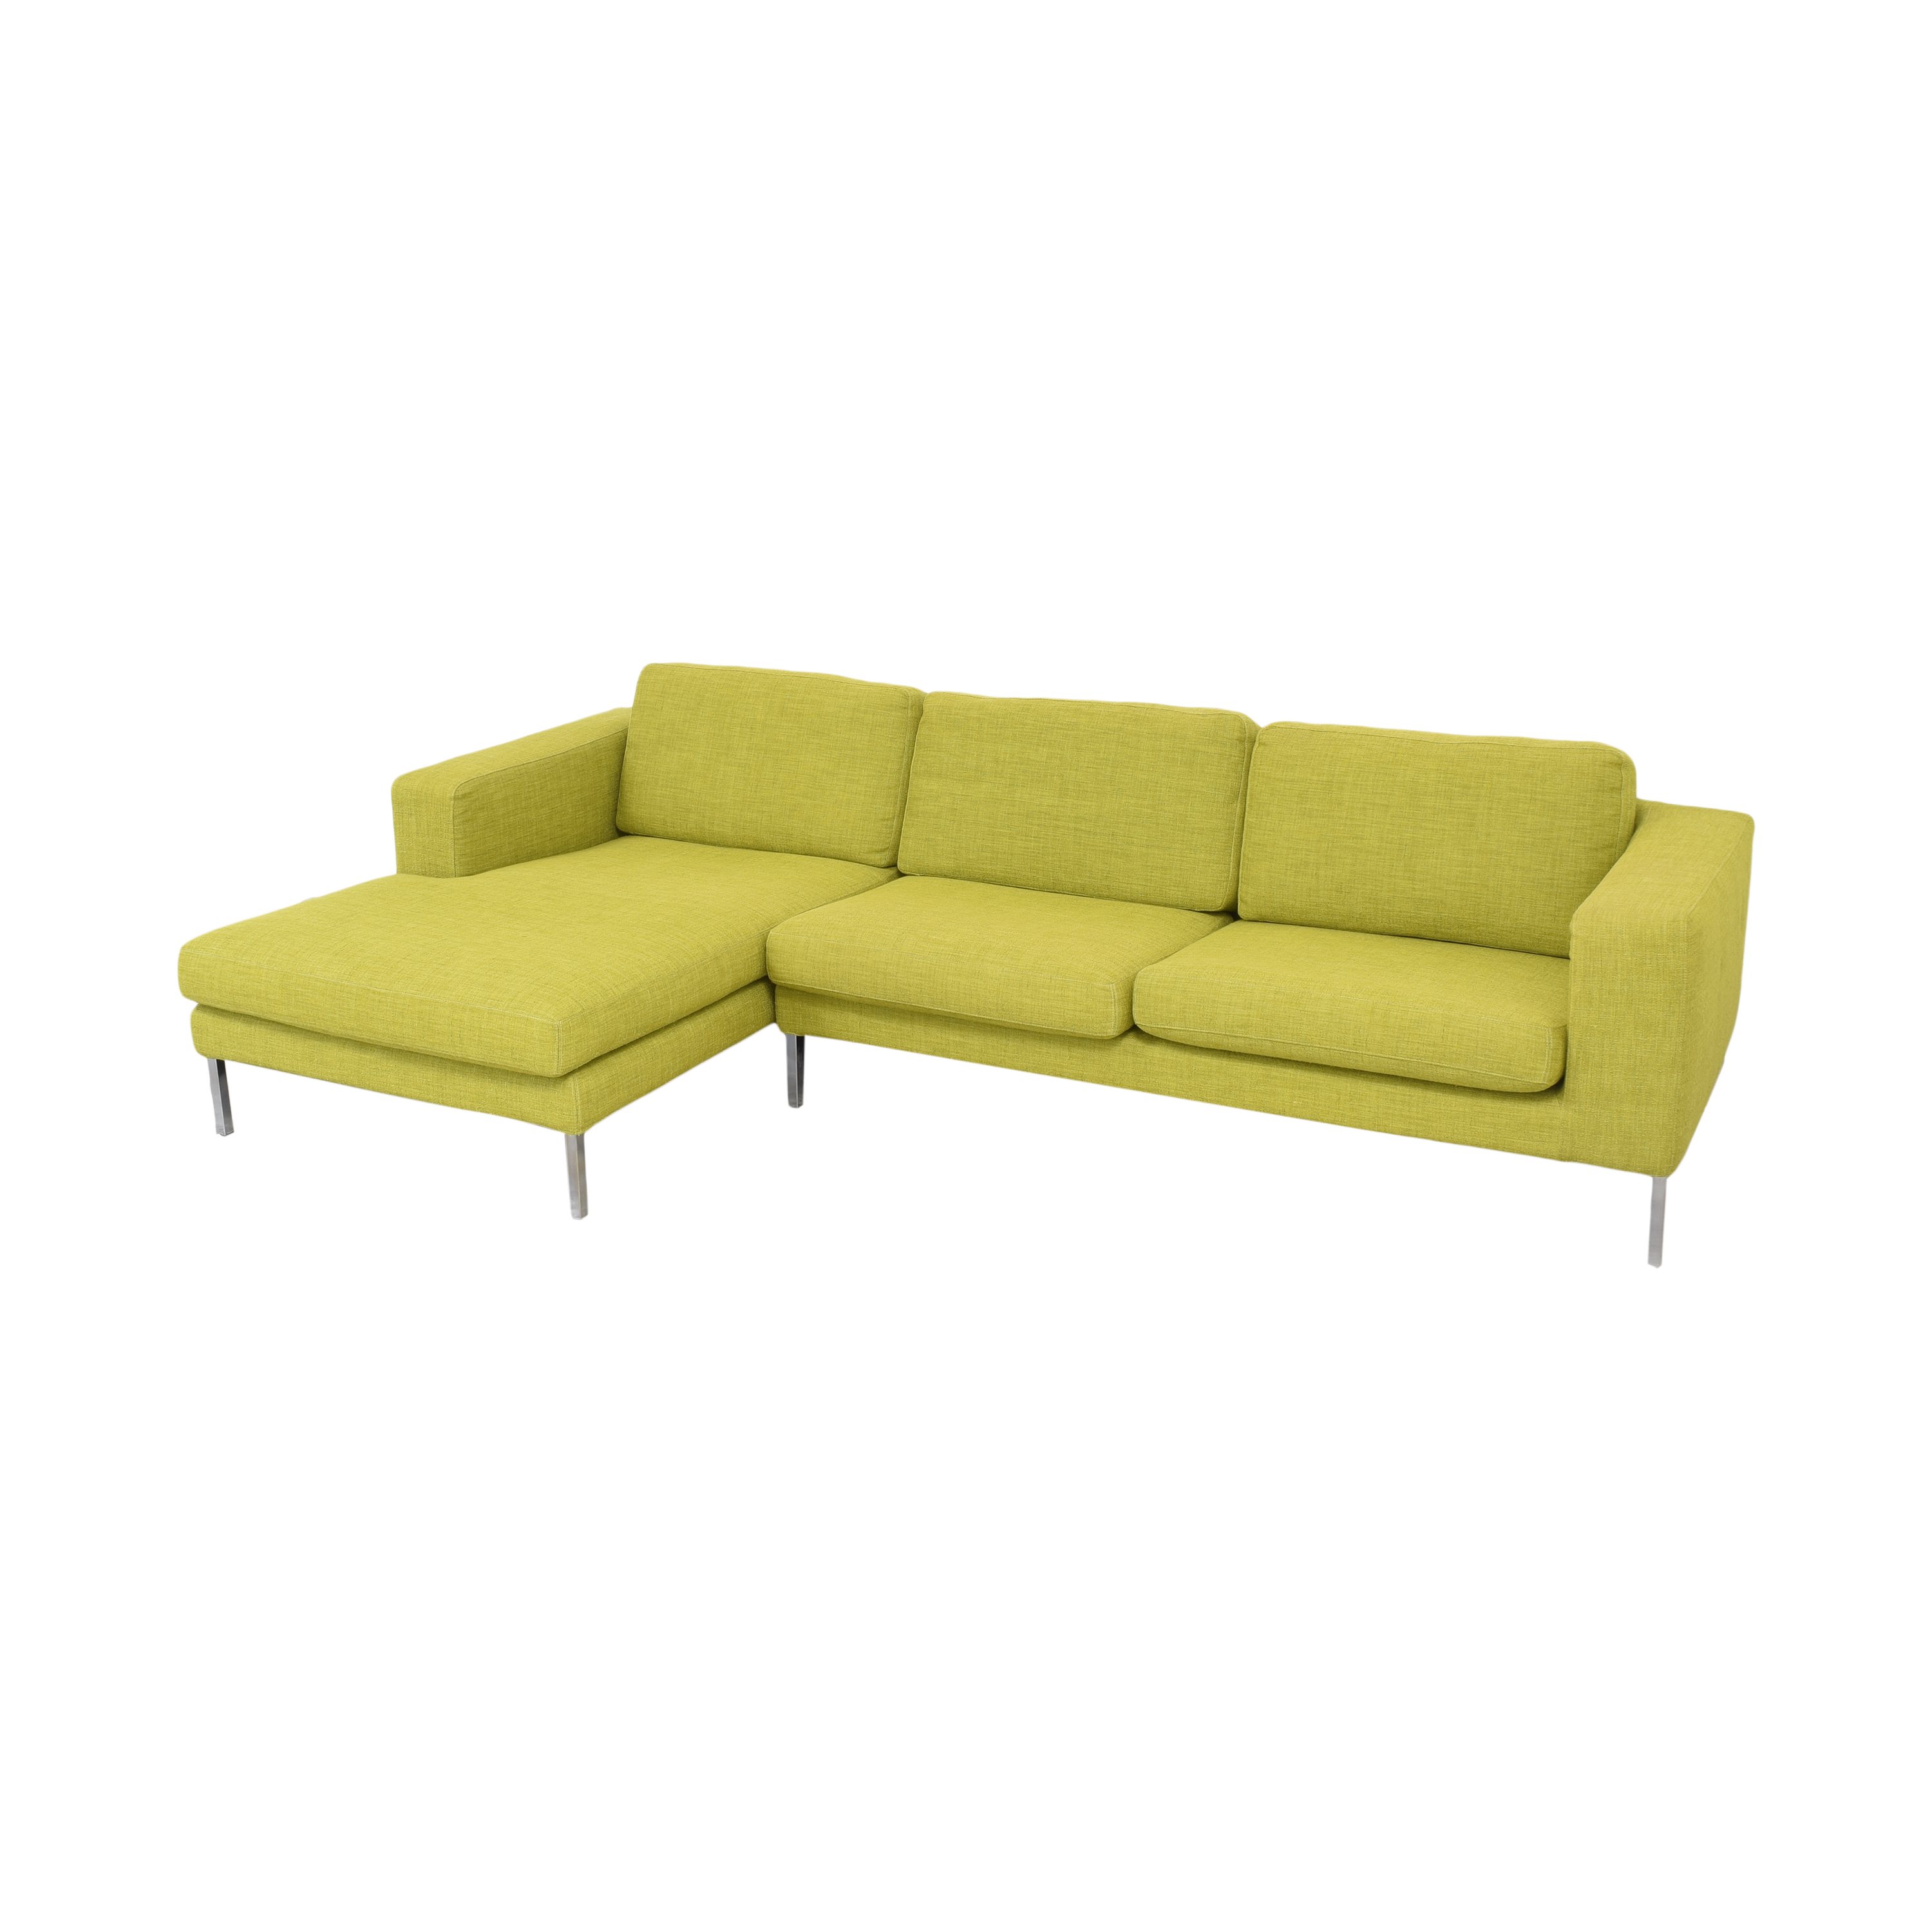 Bensen Bensen Neo Sectional Sofa ct